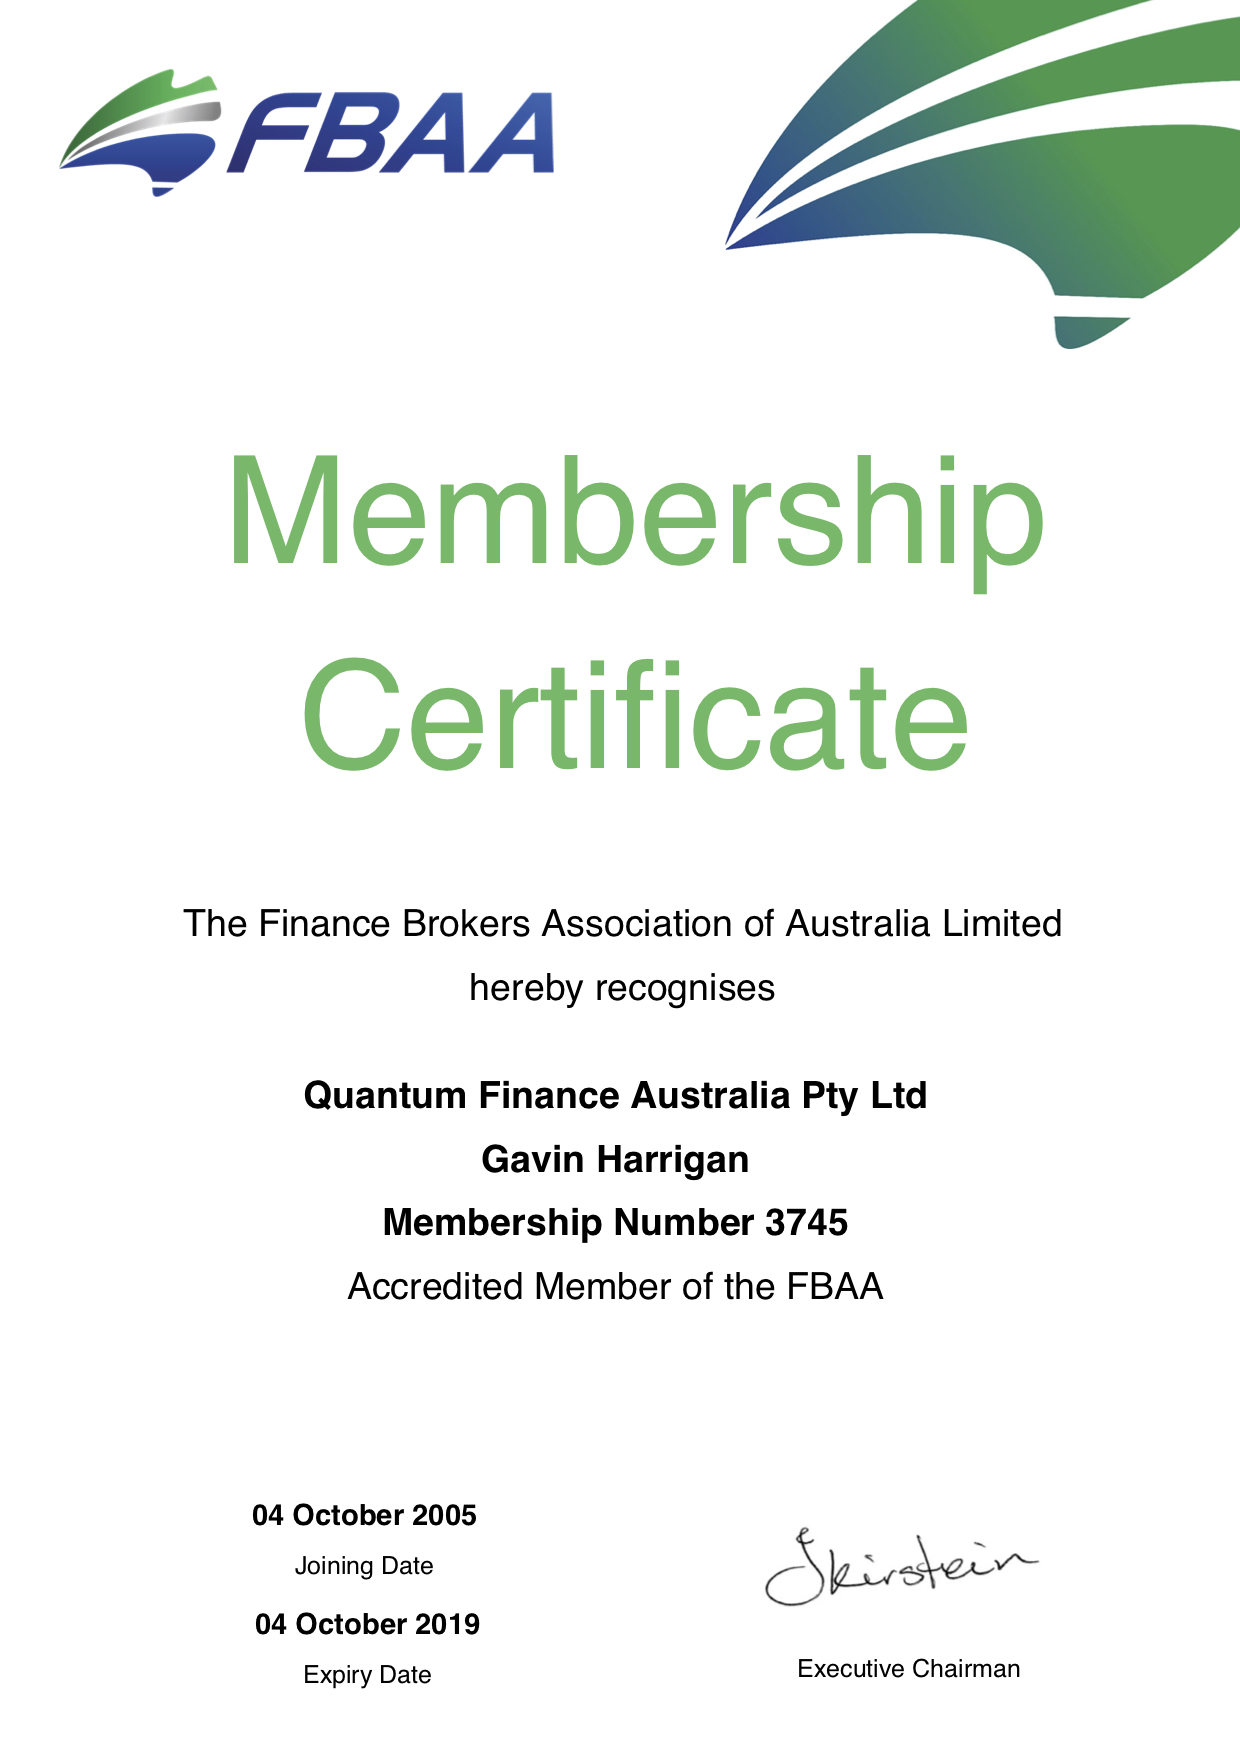 The finance brokers association of Australia regionalising Quantum Finance as a member